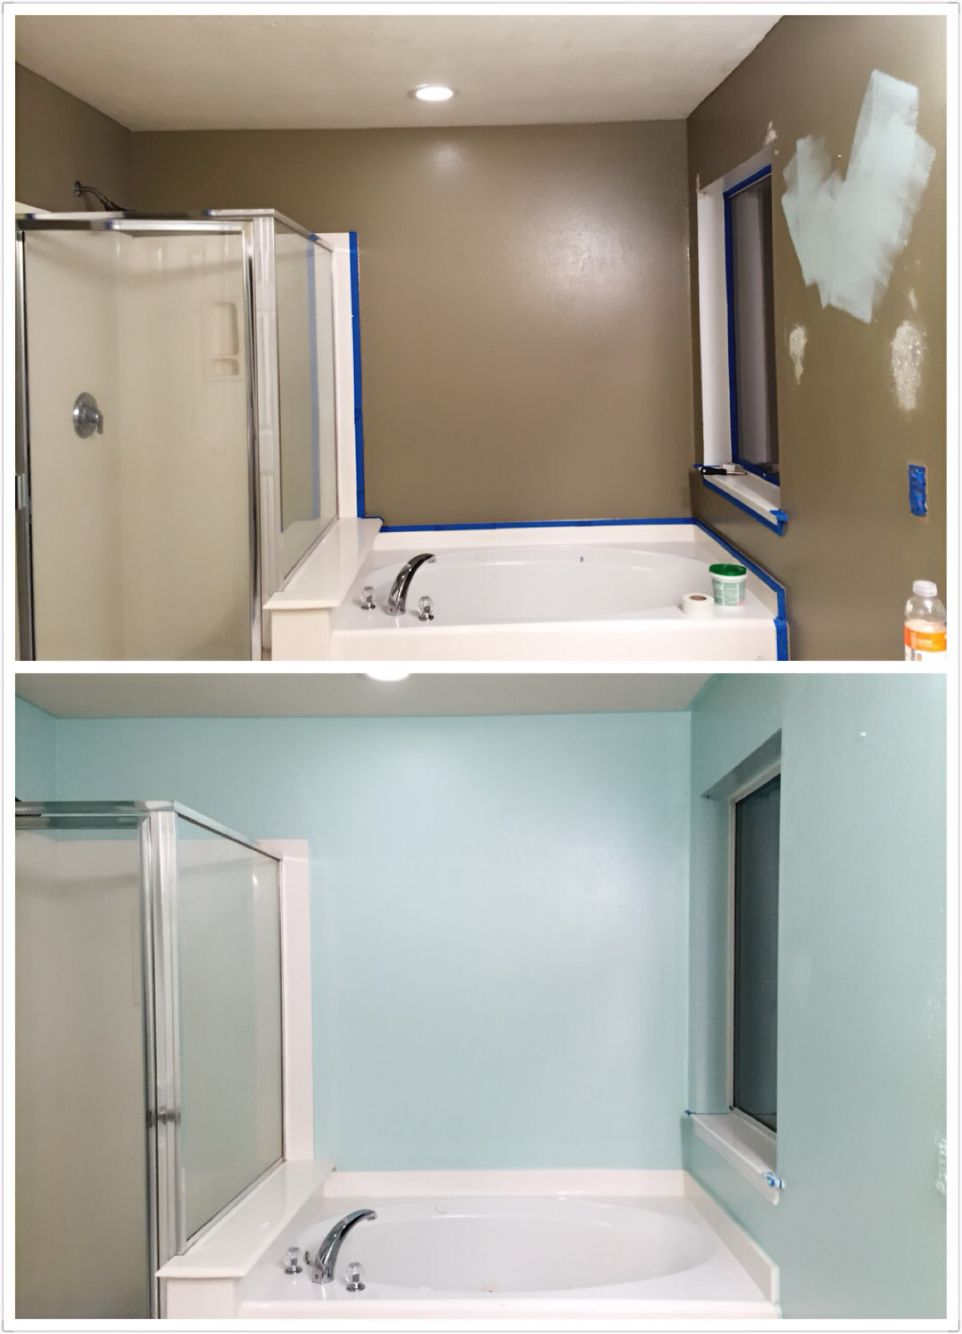 Bathroom Makeover Diy Paint Behr Whipped Mint First Time Painter Teal Colors Room